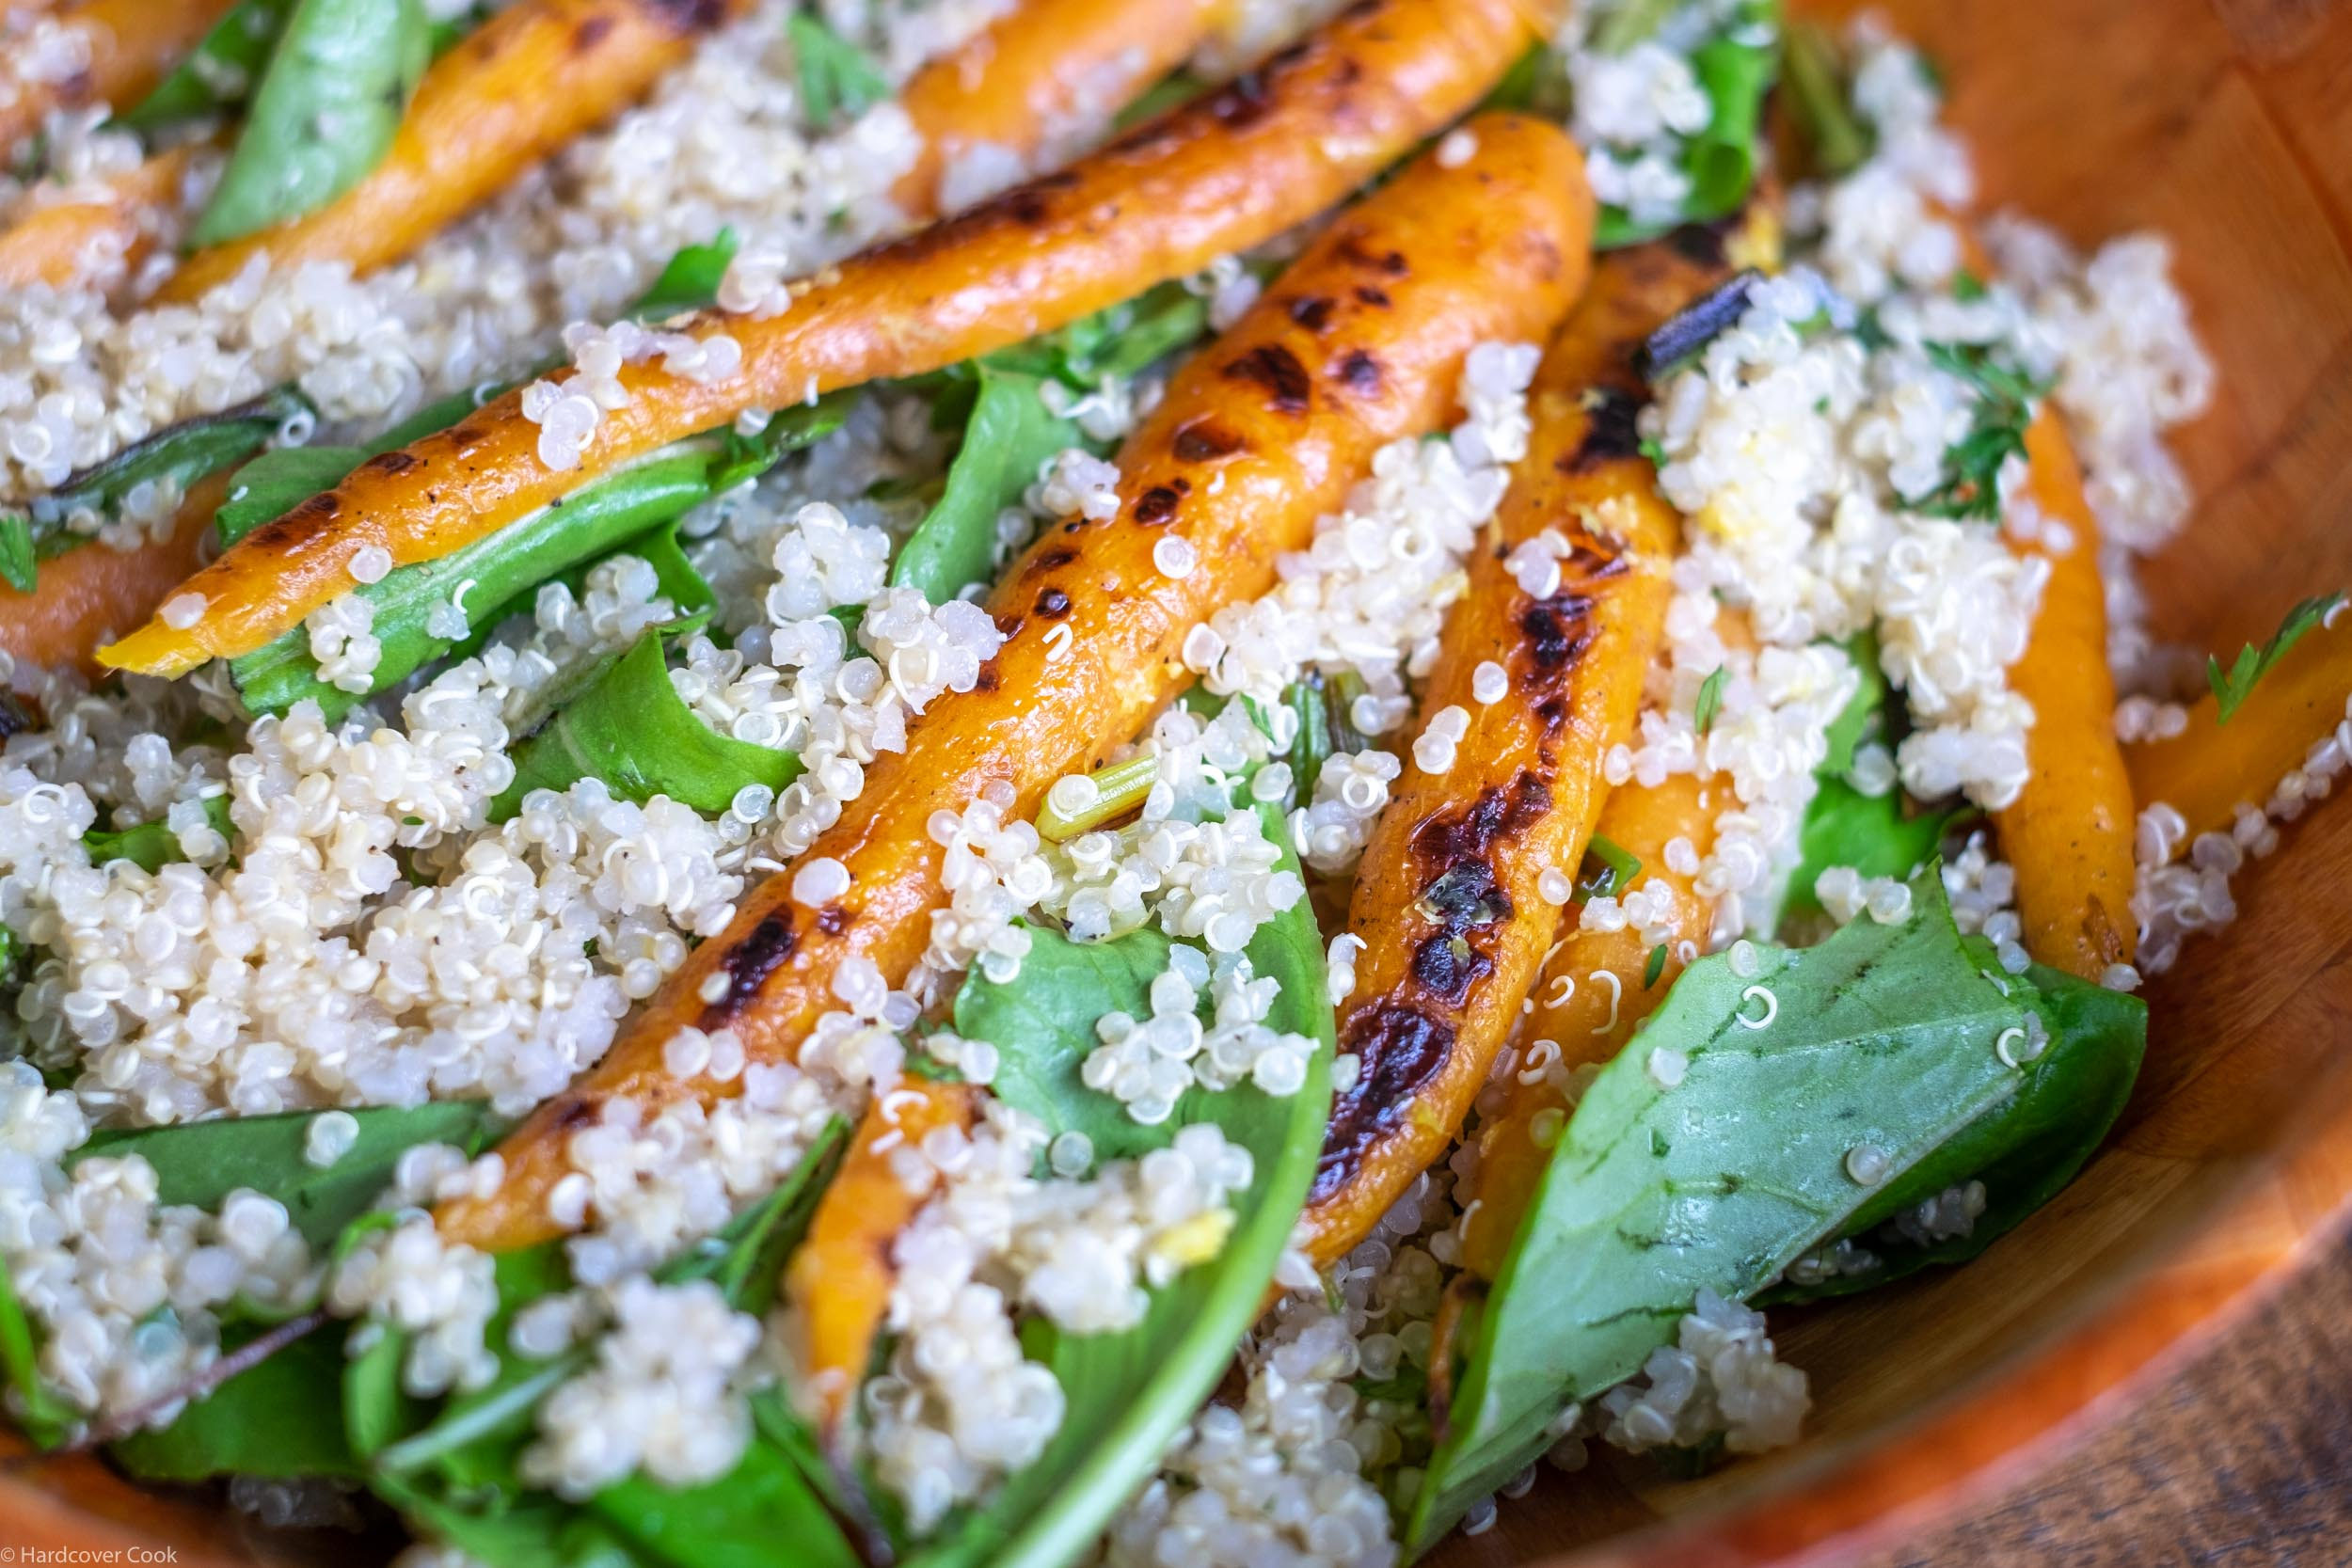 Quinoa & Carrot Salad with Meyer Lemon Vinaigrette from Thank You For Smoking